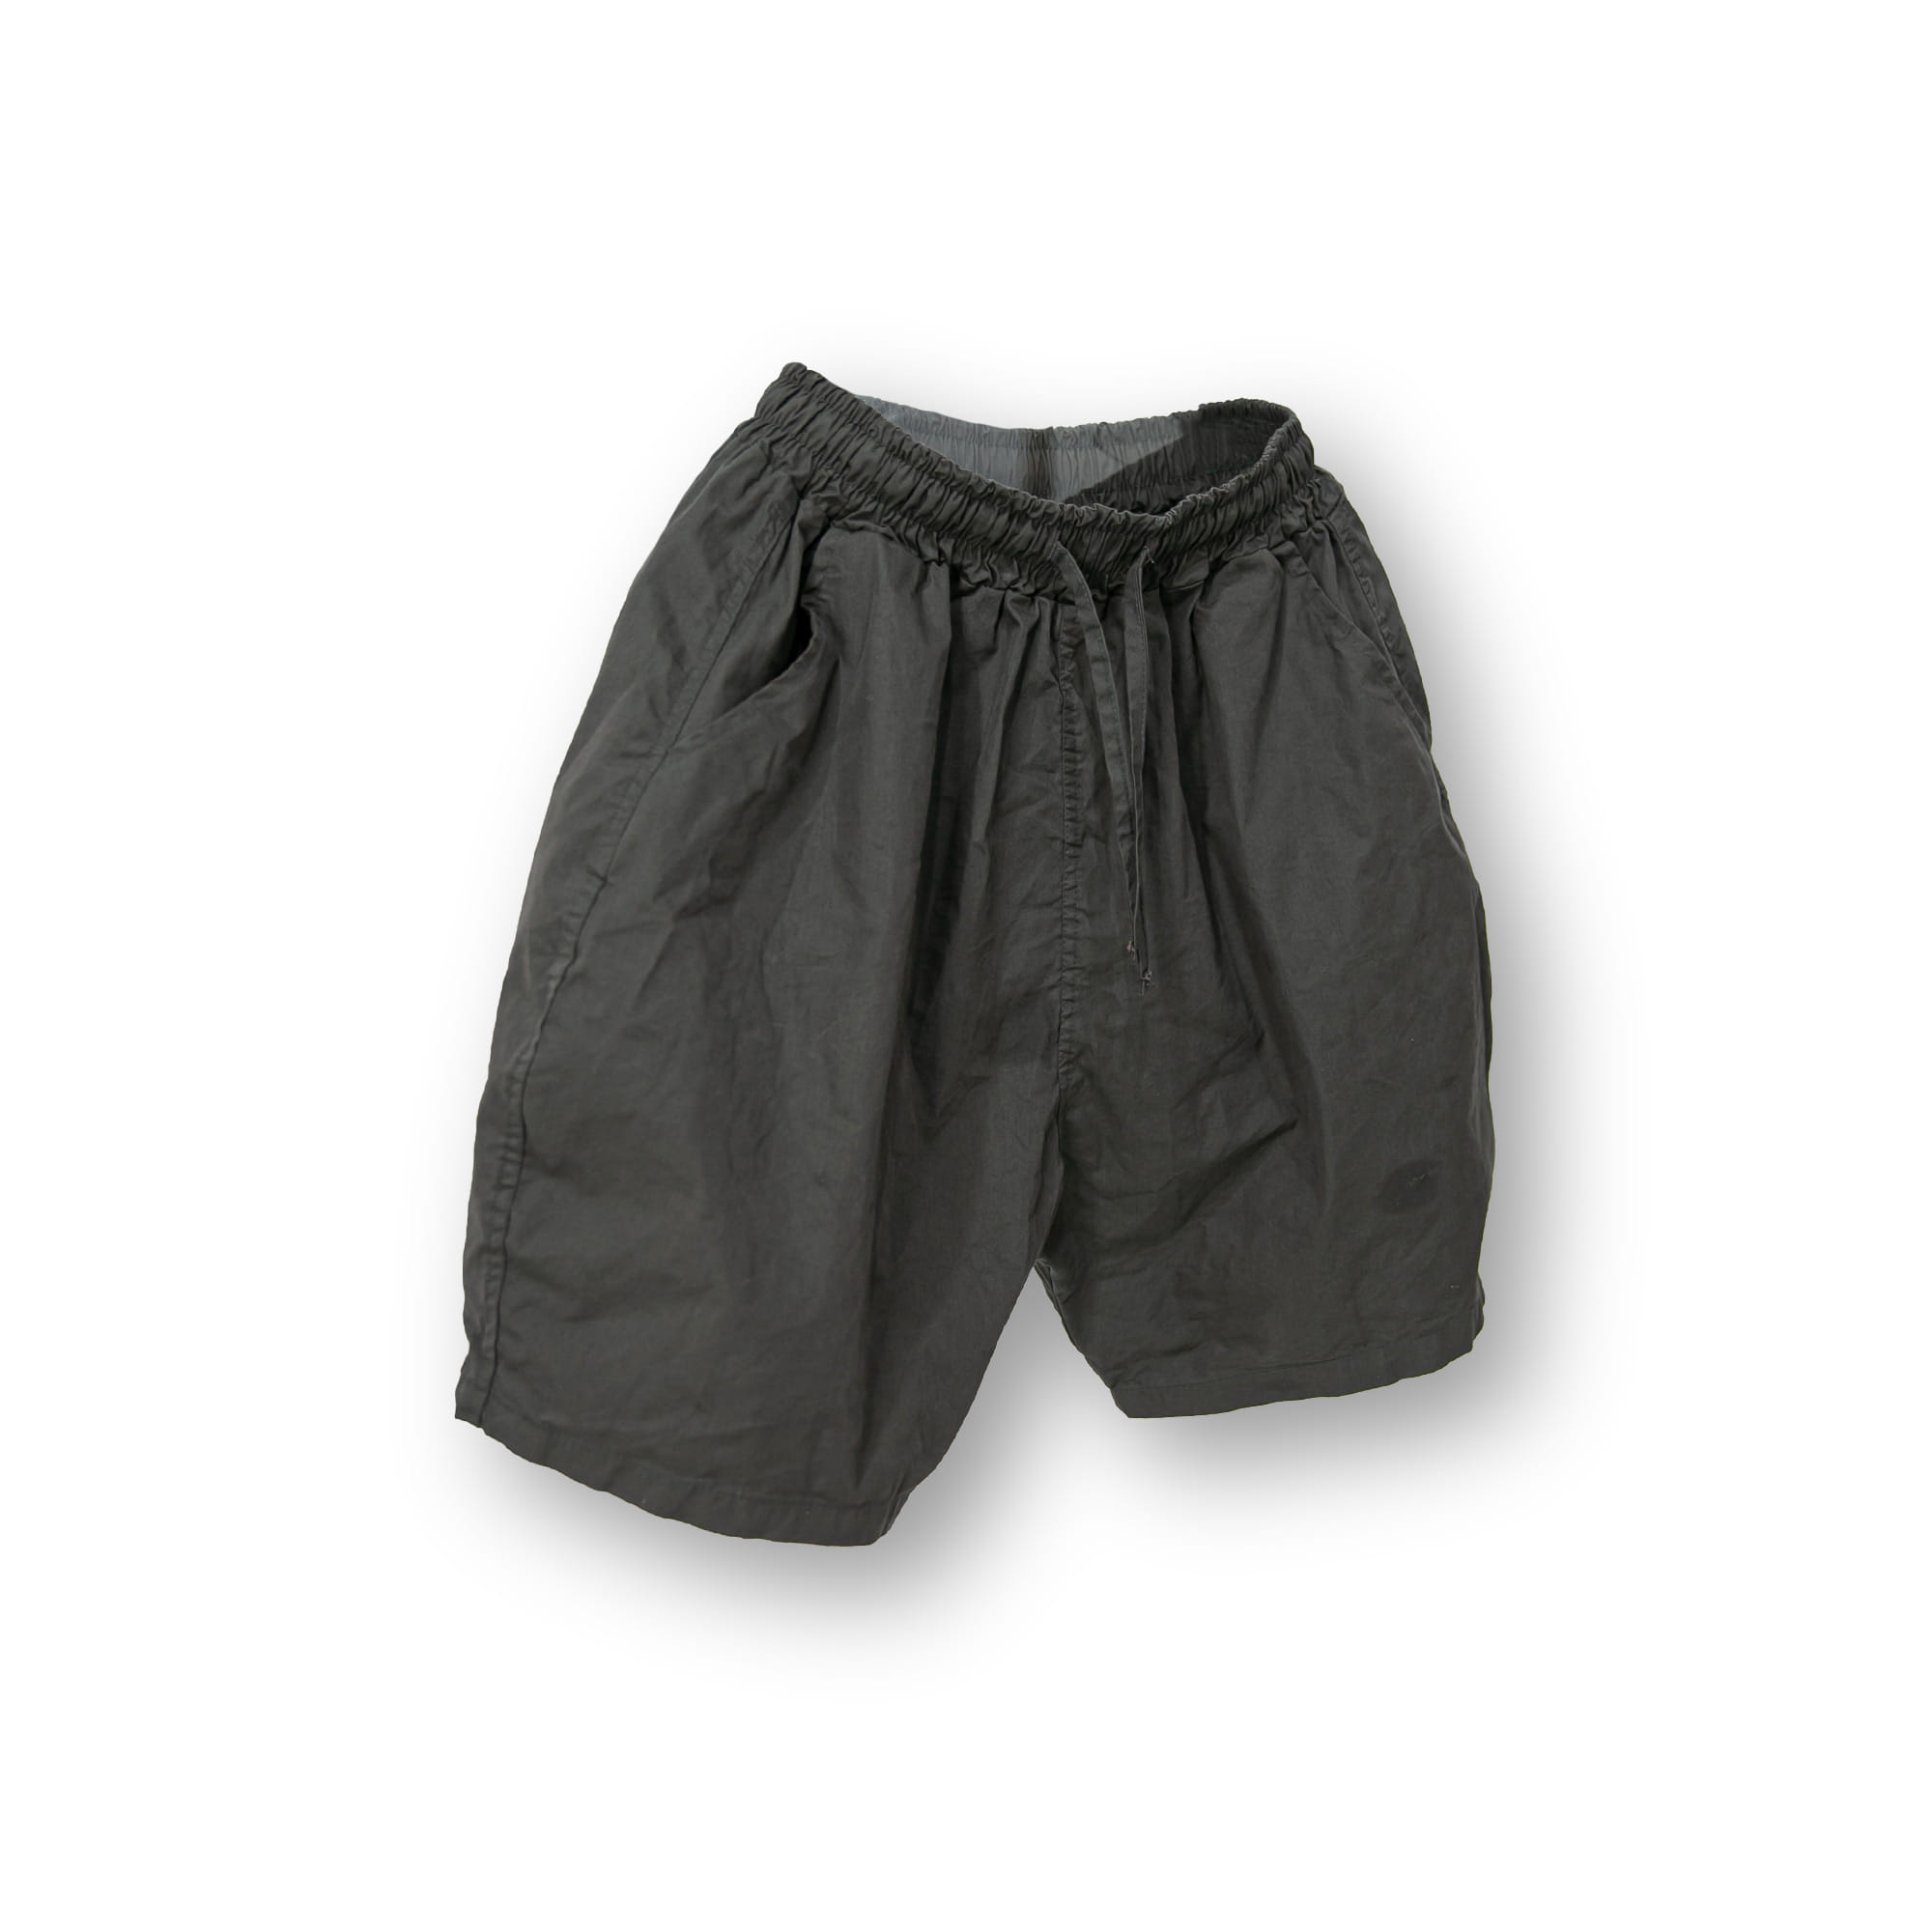 Cn Volume Shorts - Dark Grey